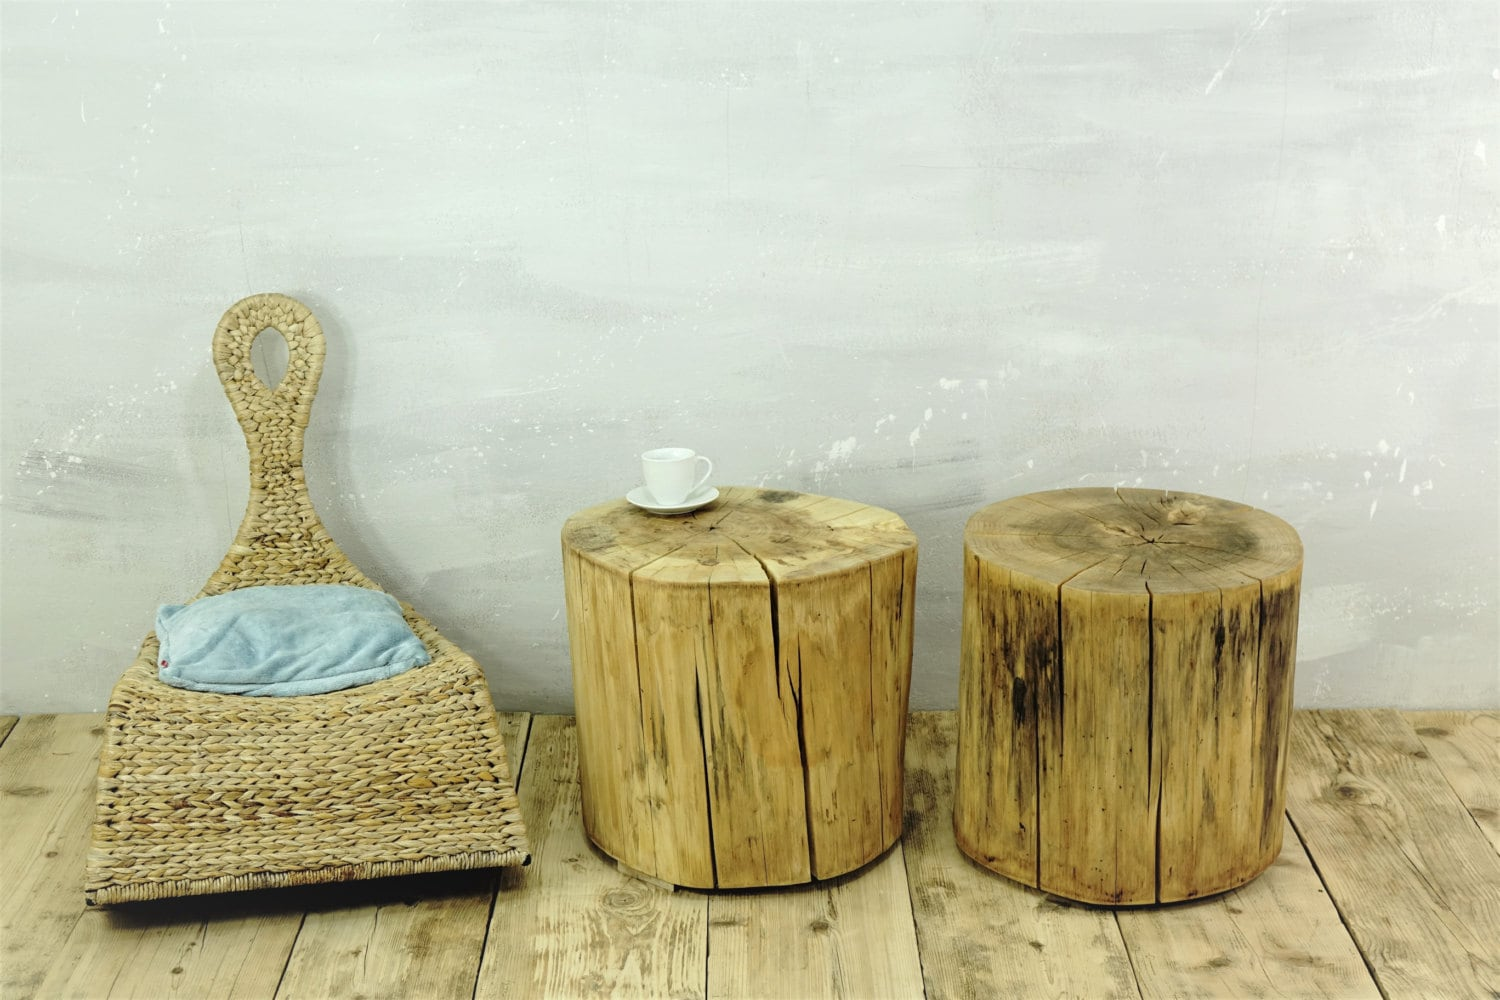 Tree Stumps Table Set Of 2 Rustic Tree Trunks Baumstumpf Baumstamm